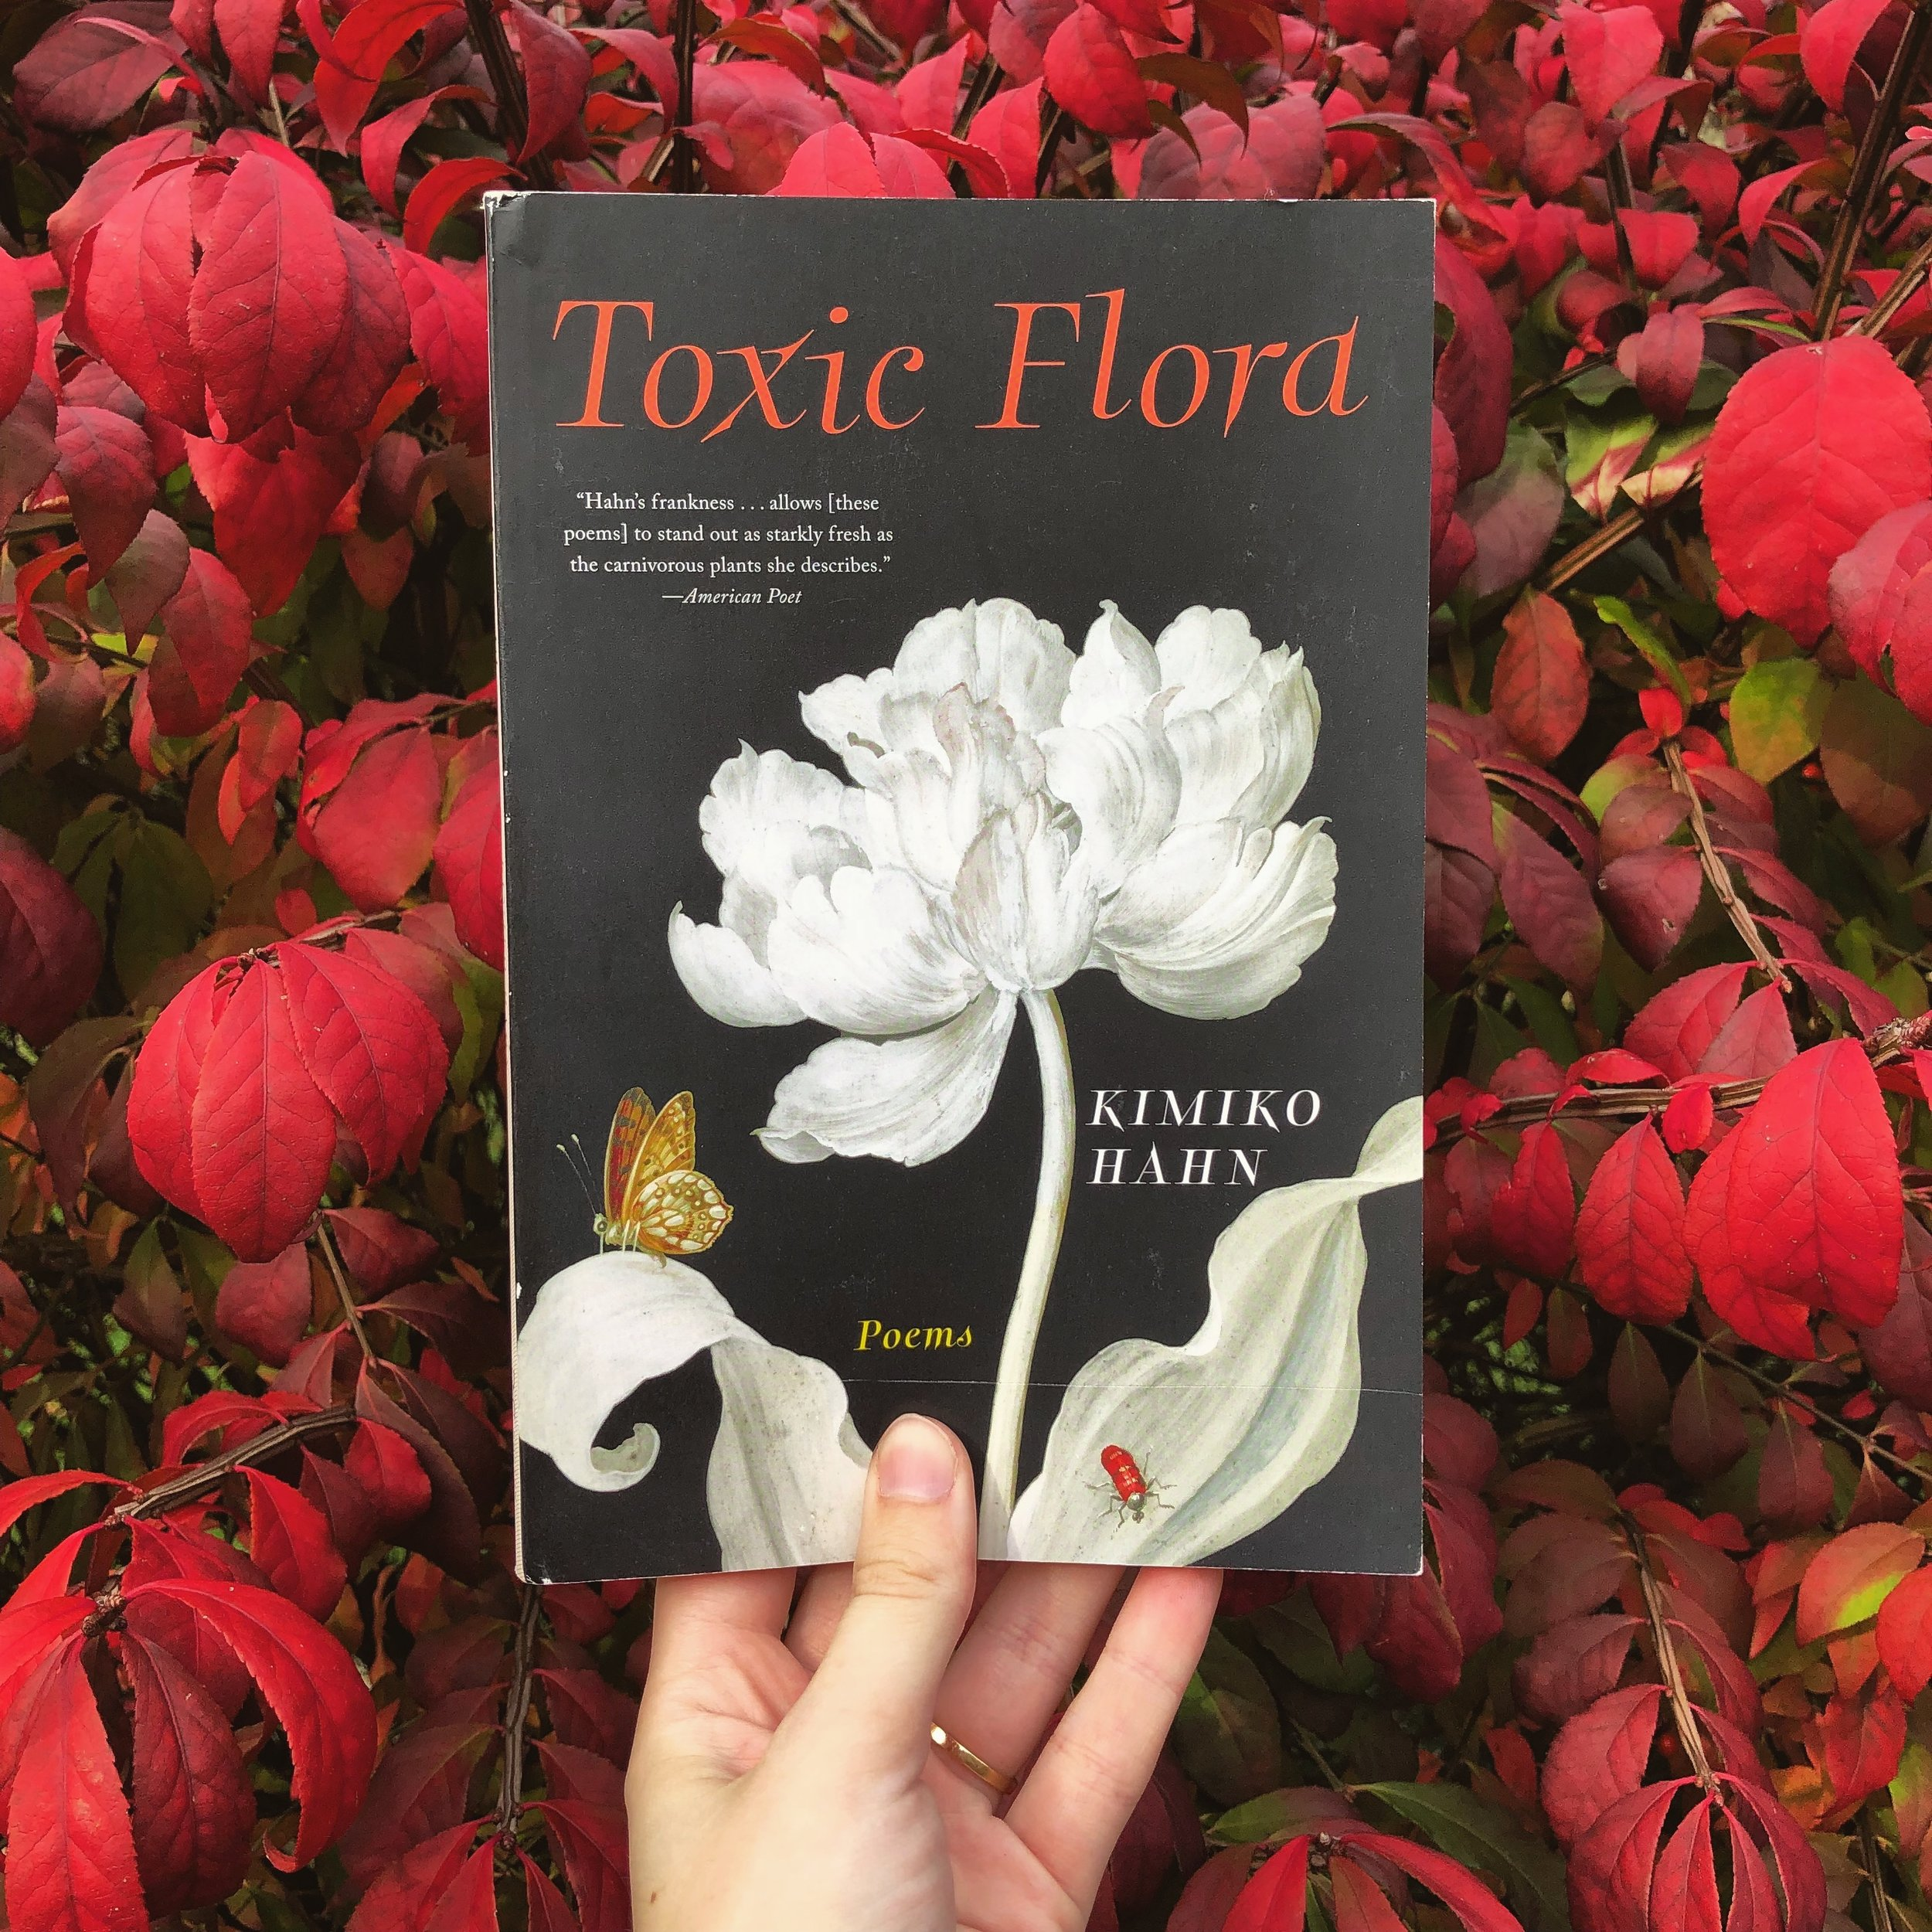 November's Book Review - 'Toxic Flora,' by Kimiko Hahn